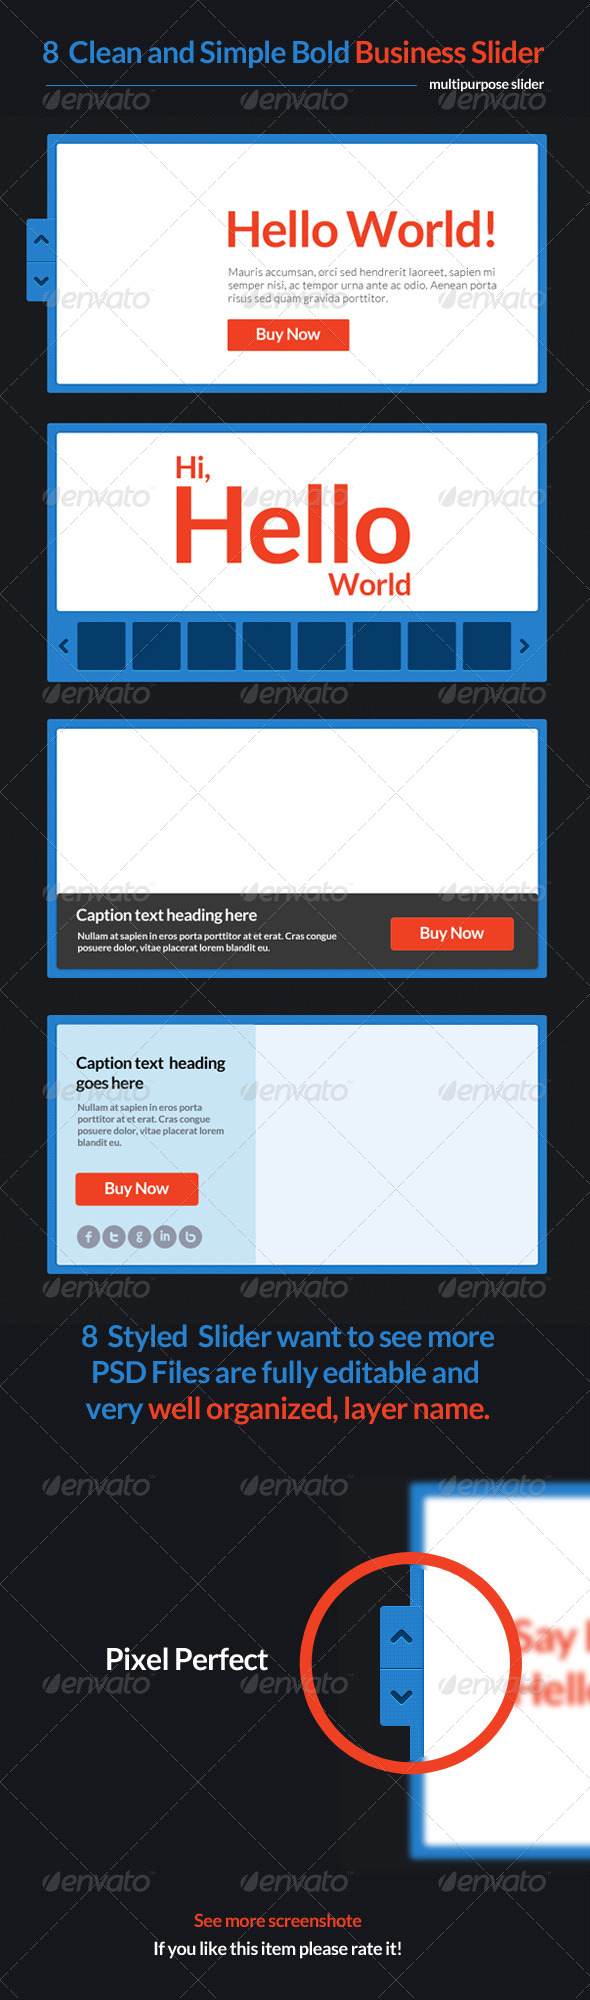 GraphicRiver 8 Clean and Simple Bold Business Slider 4644083